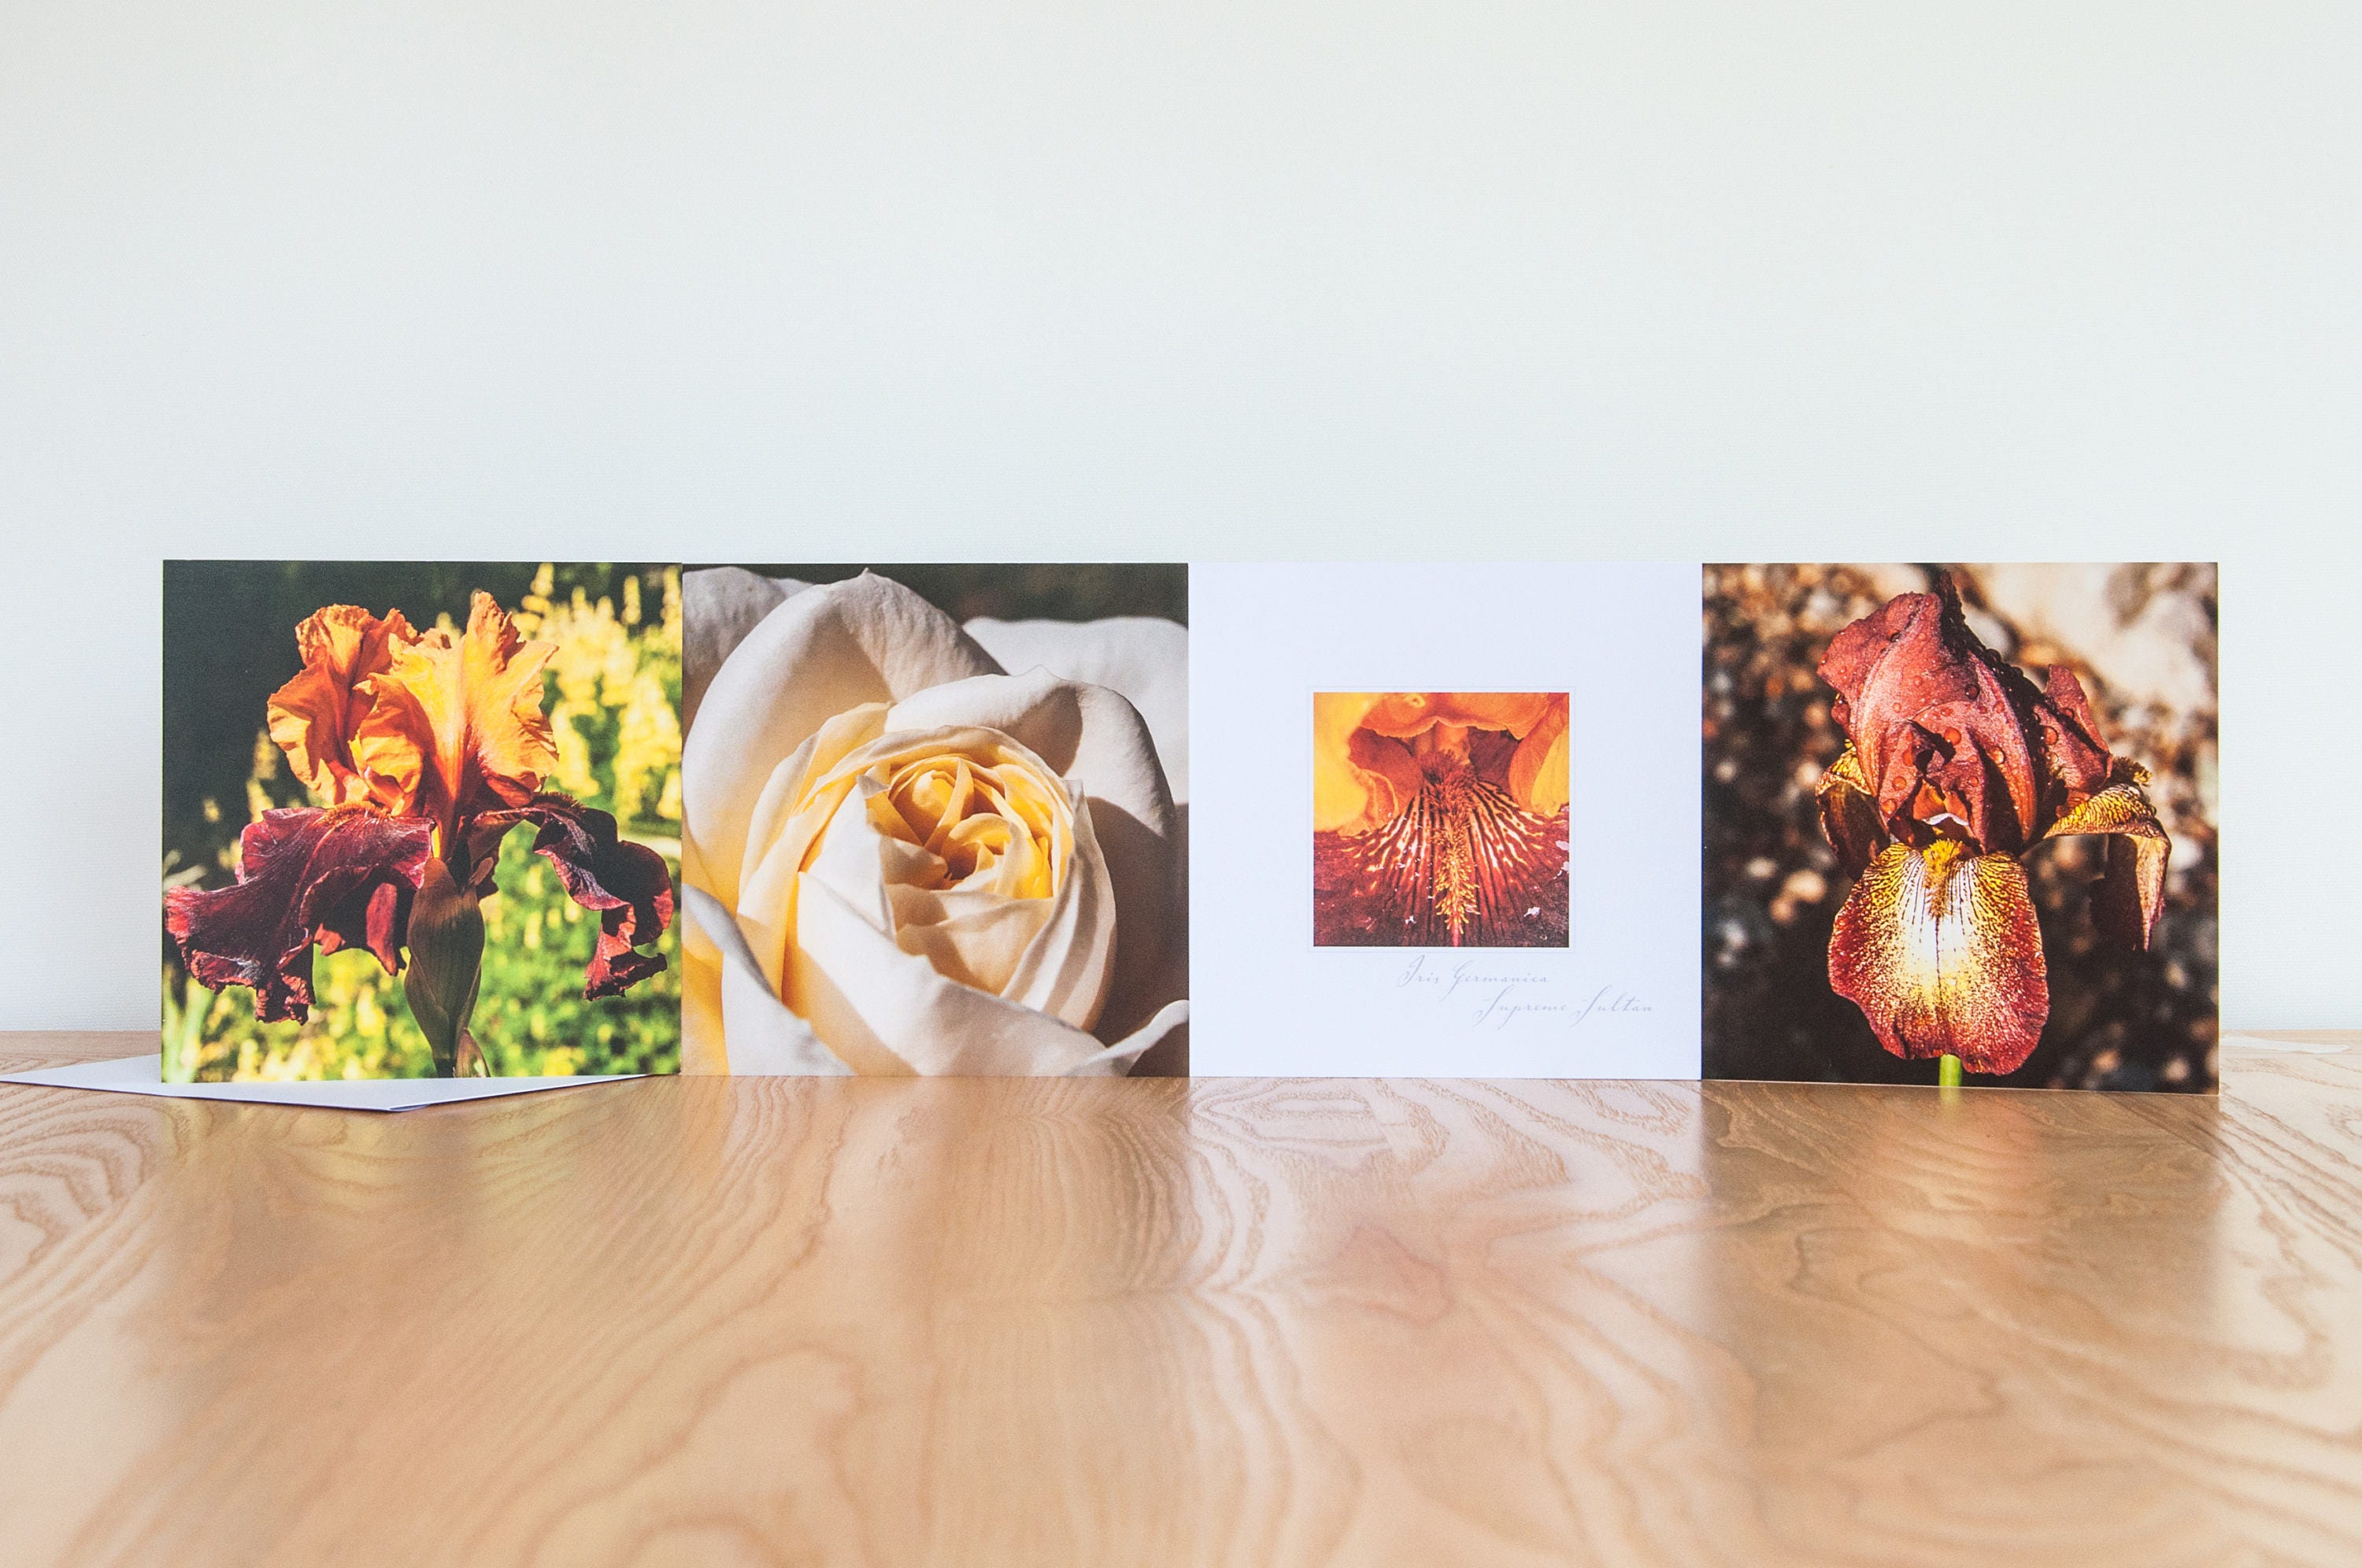 Floral cards flower cards photographic greetings cards pack of 4 floral cards flower cards photographic greetings cards pack of 4 blank inside kristyandbryce Image collections